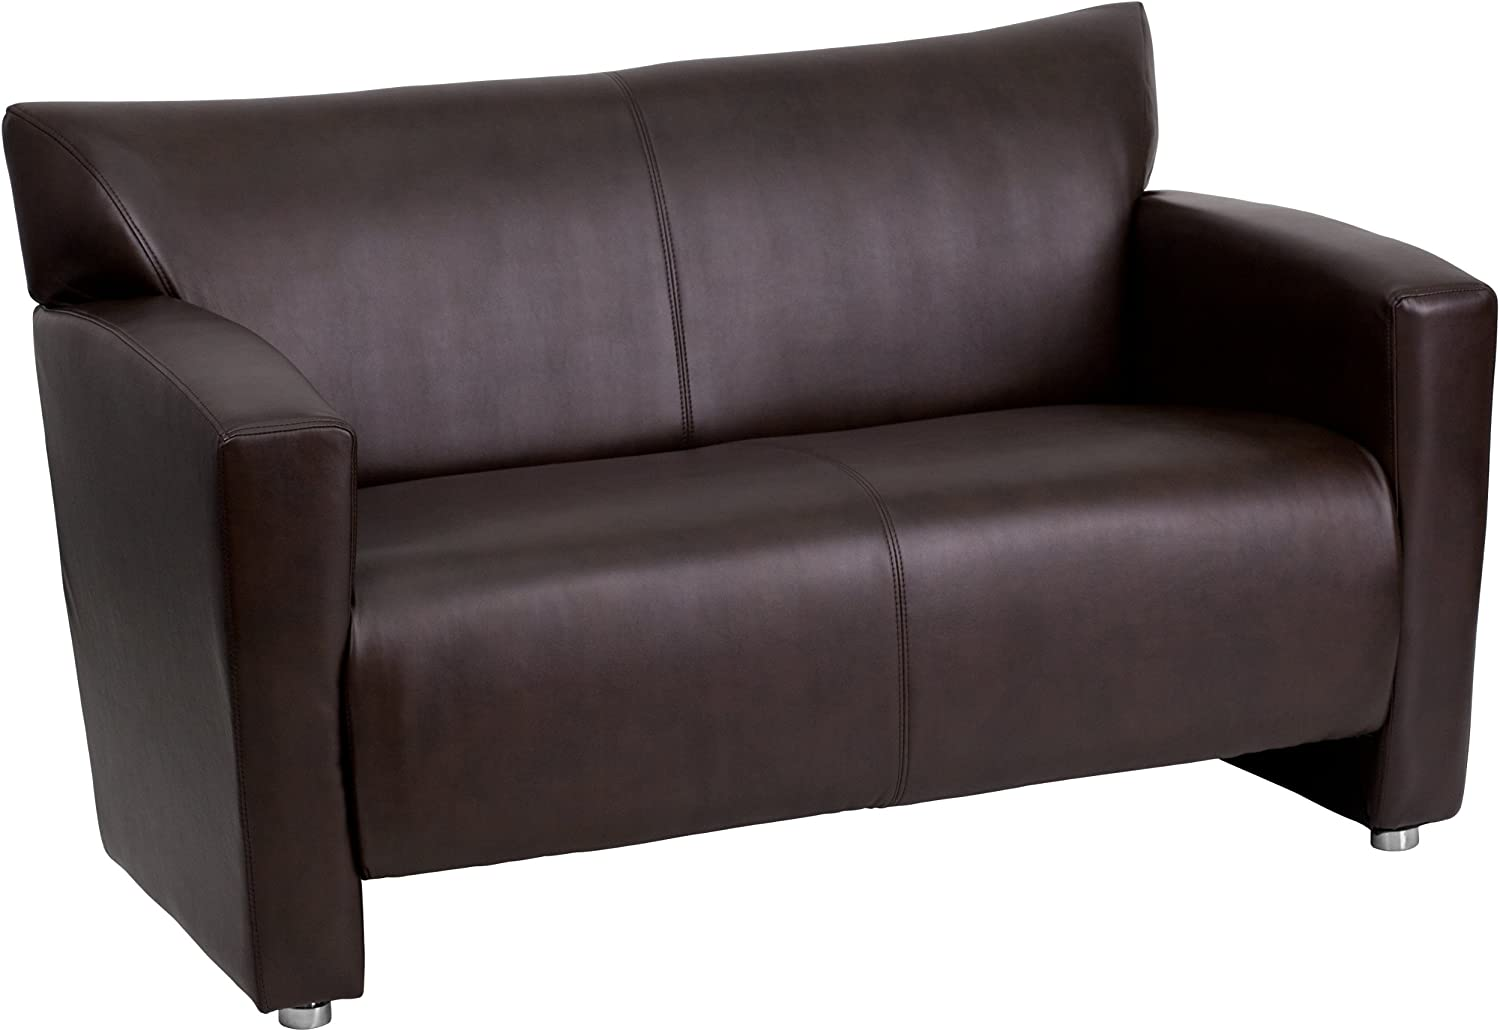 Flash Furniture HERCULES Majesty Series Brown LeatherSoft Loveseat